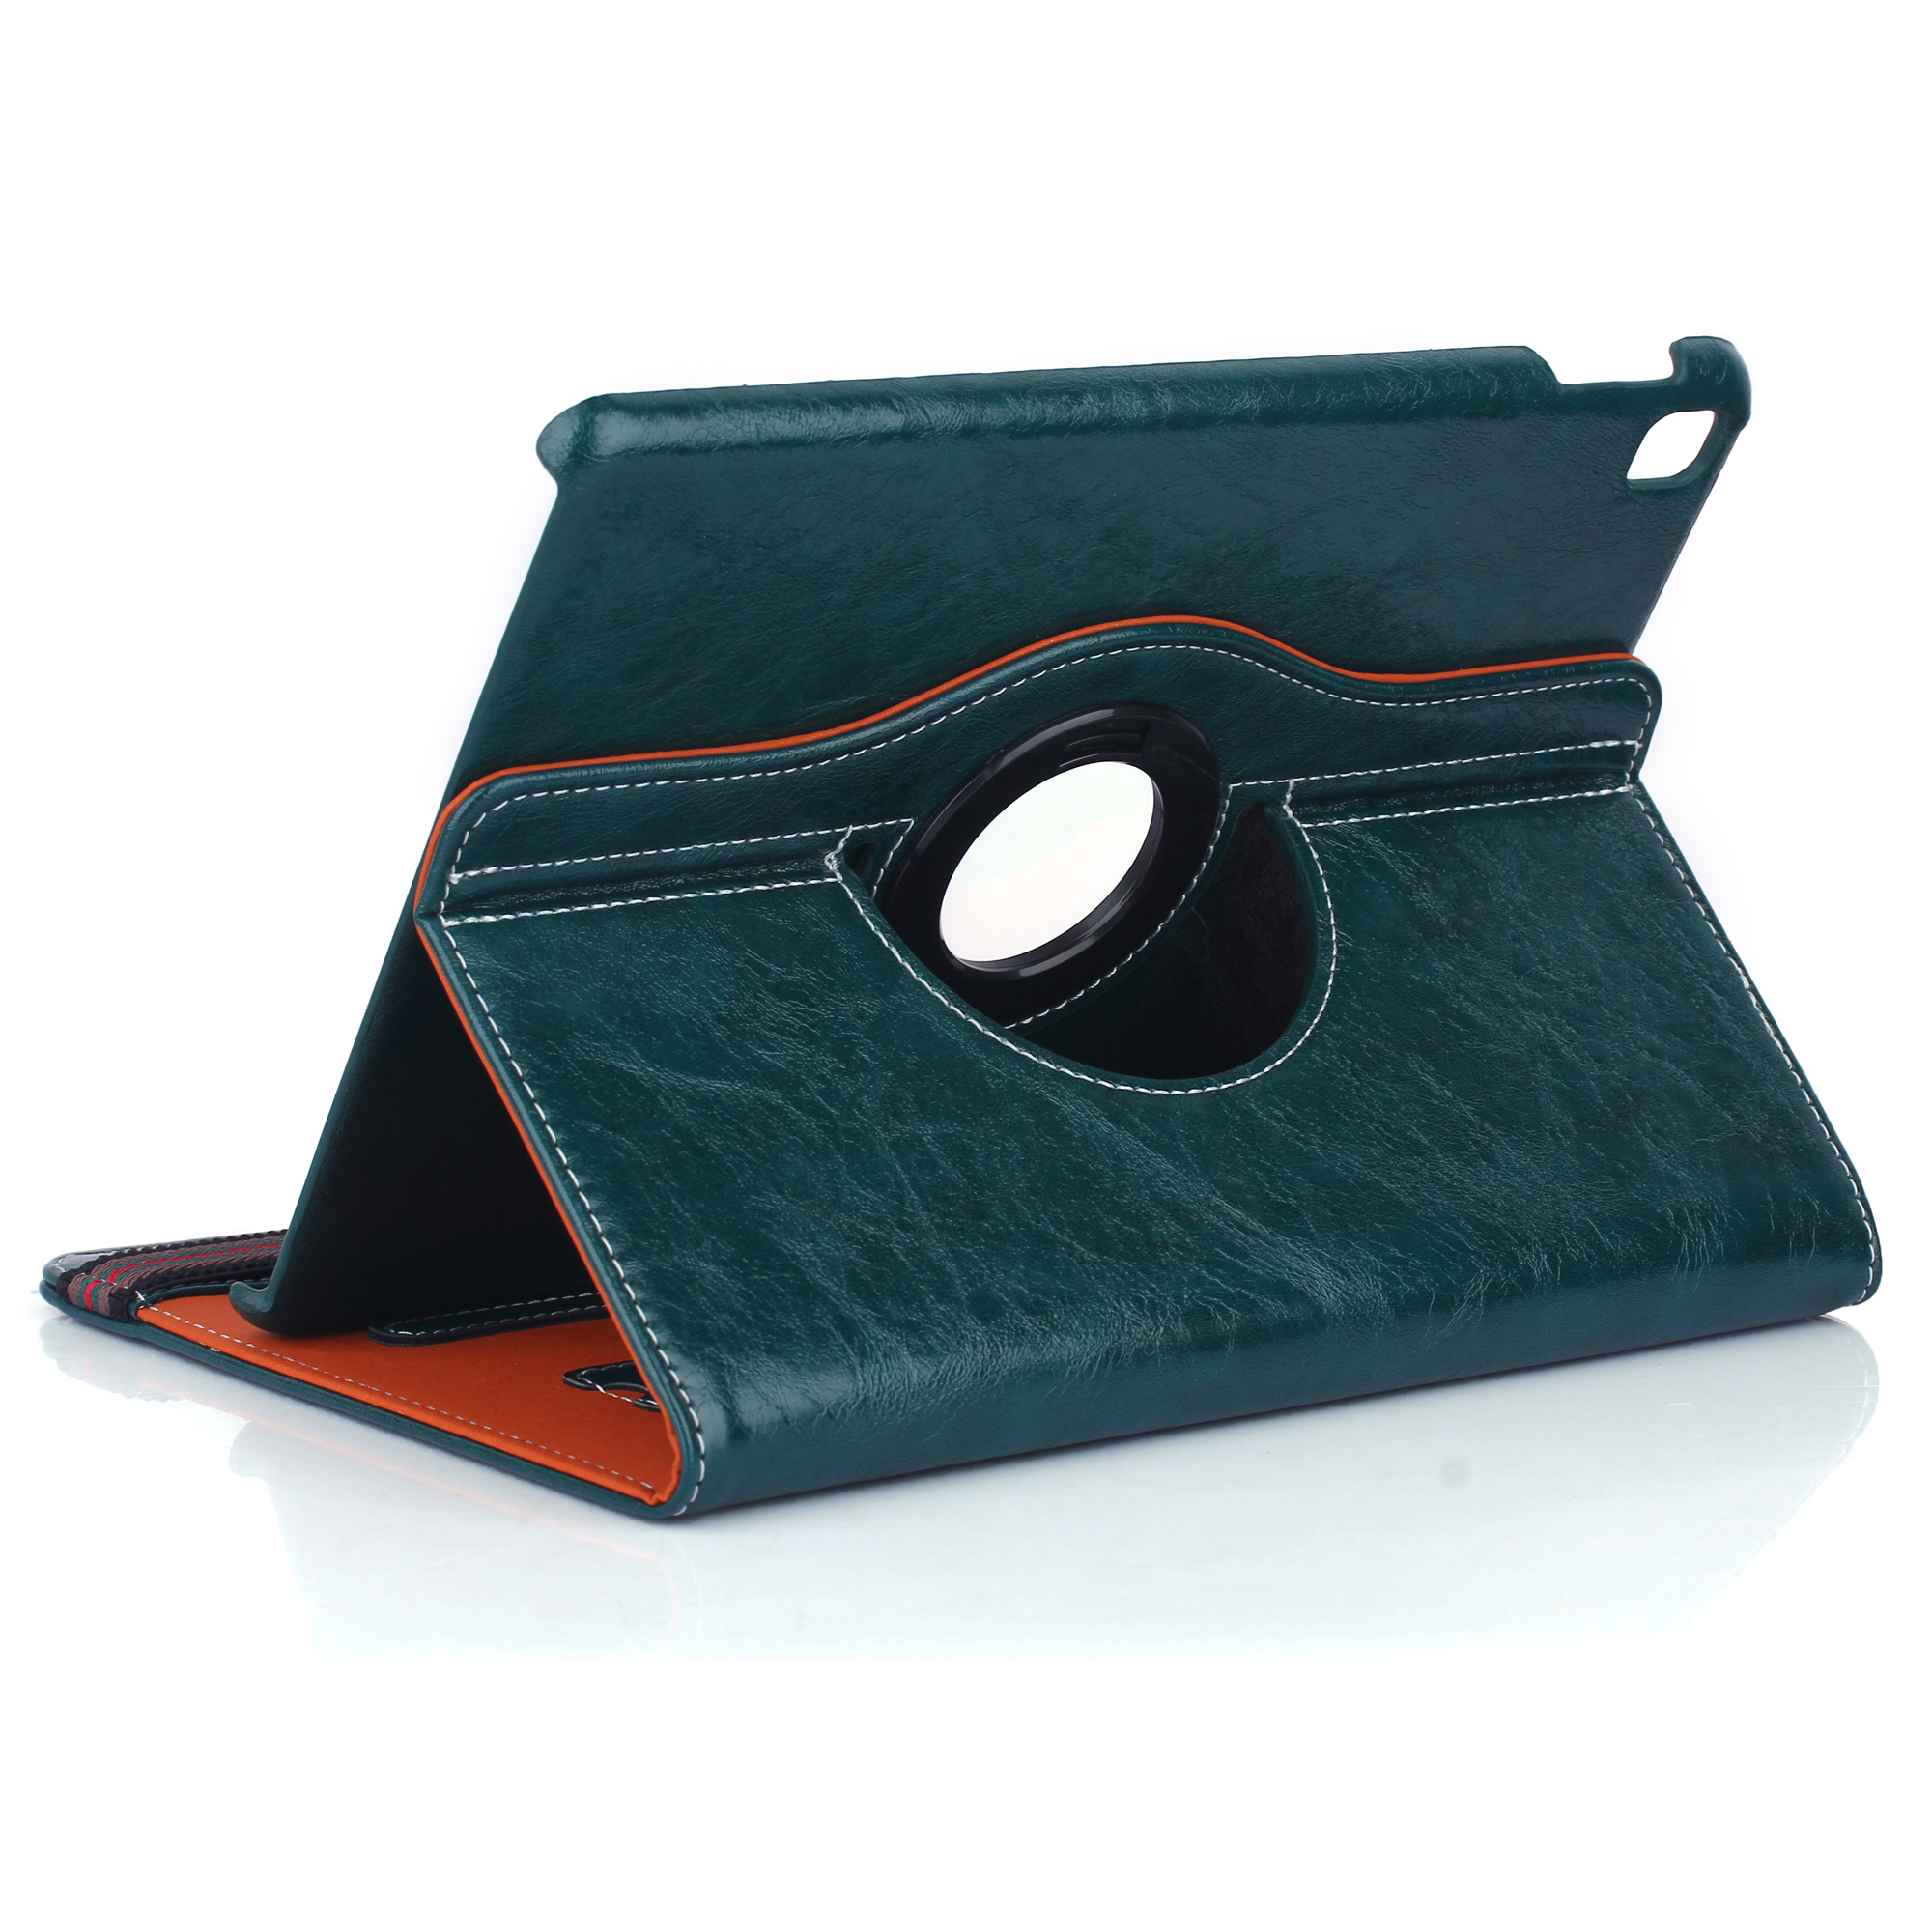 Ultra Thin PU Leather Rotatable Holder Stand Cover Case For iPad Air 2